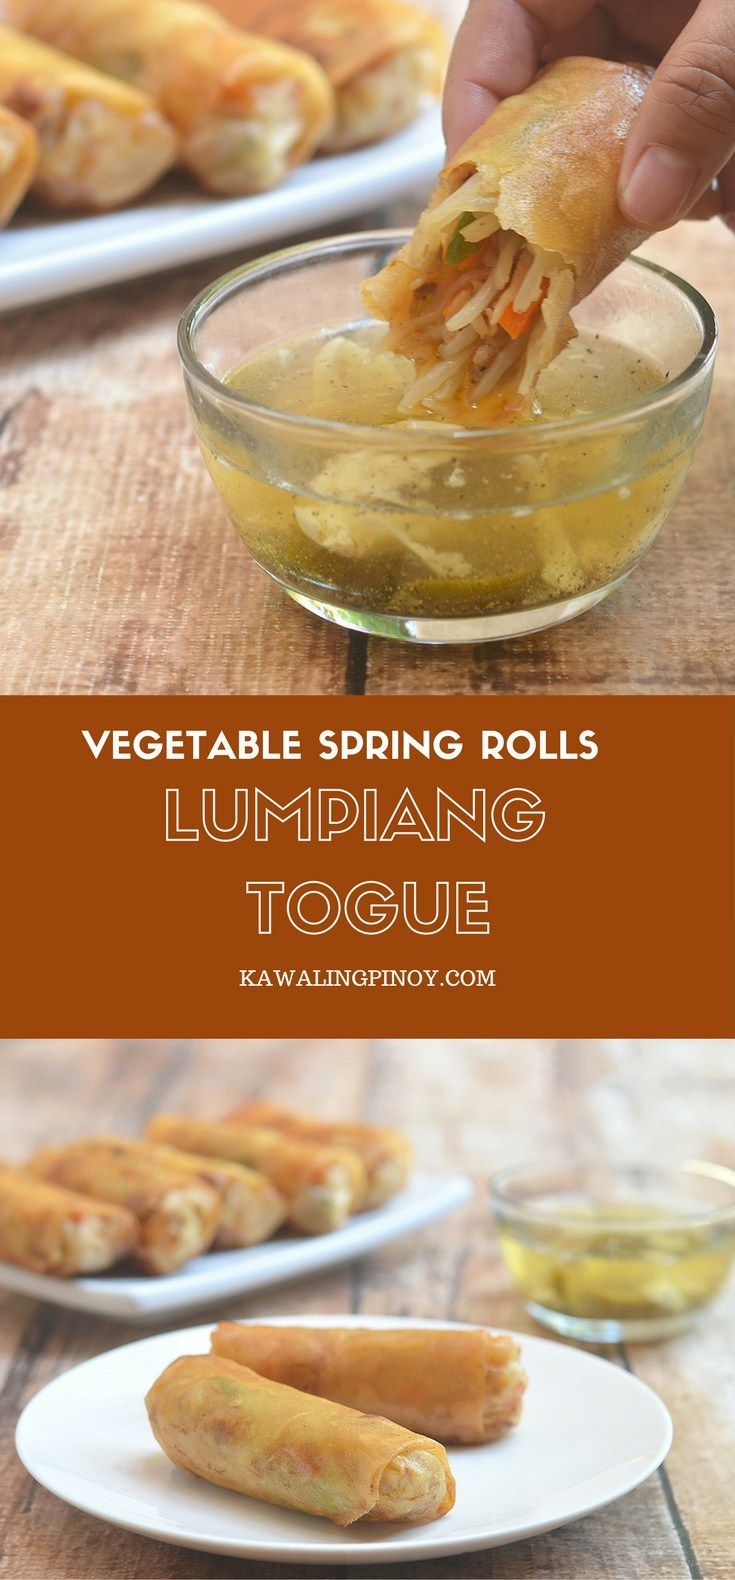 Lumpiang Togue filled with bean sprouts, carrots, green beans, pork, and shrimps. Golden, crunchy and delicious, these vegetable spring rolls are the perfect snack or appetizer!